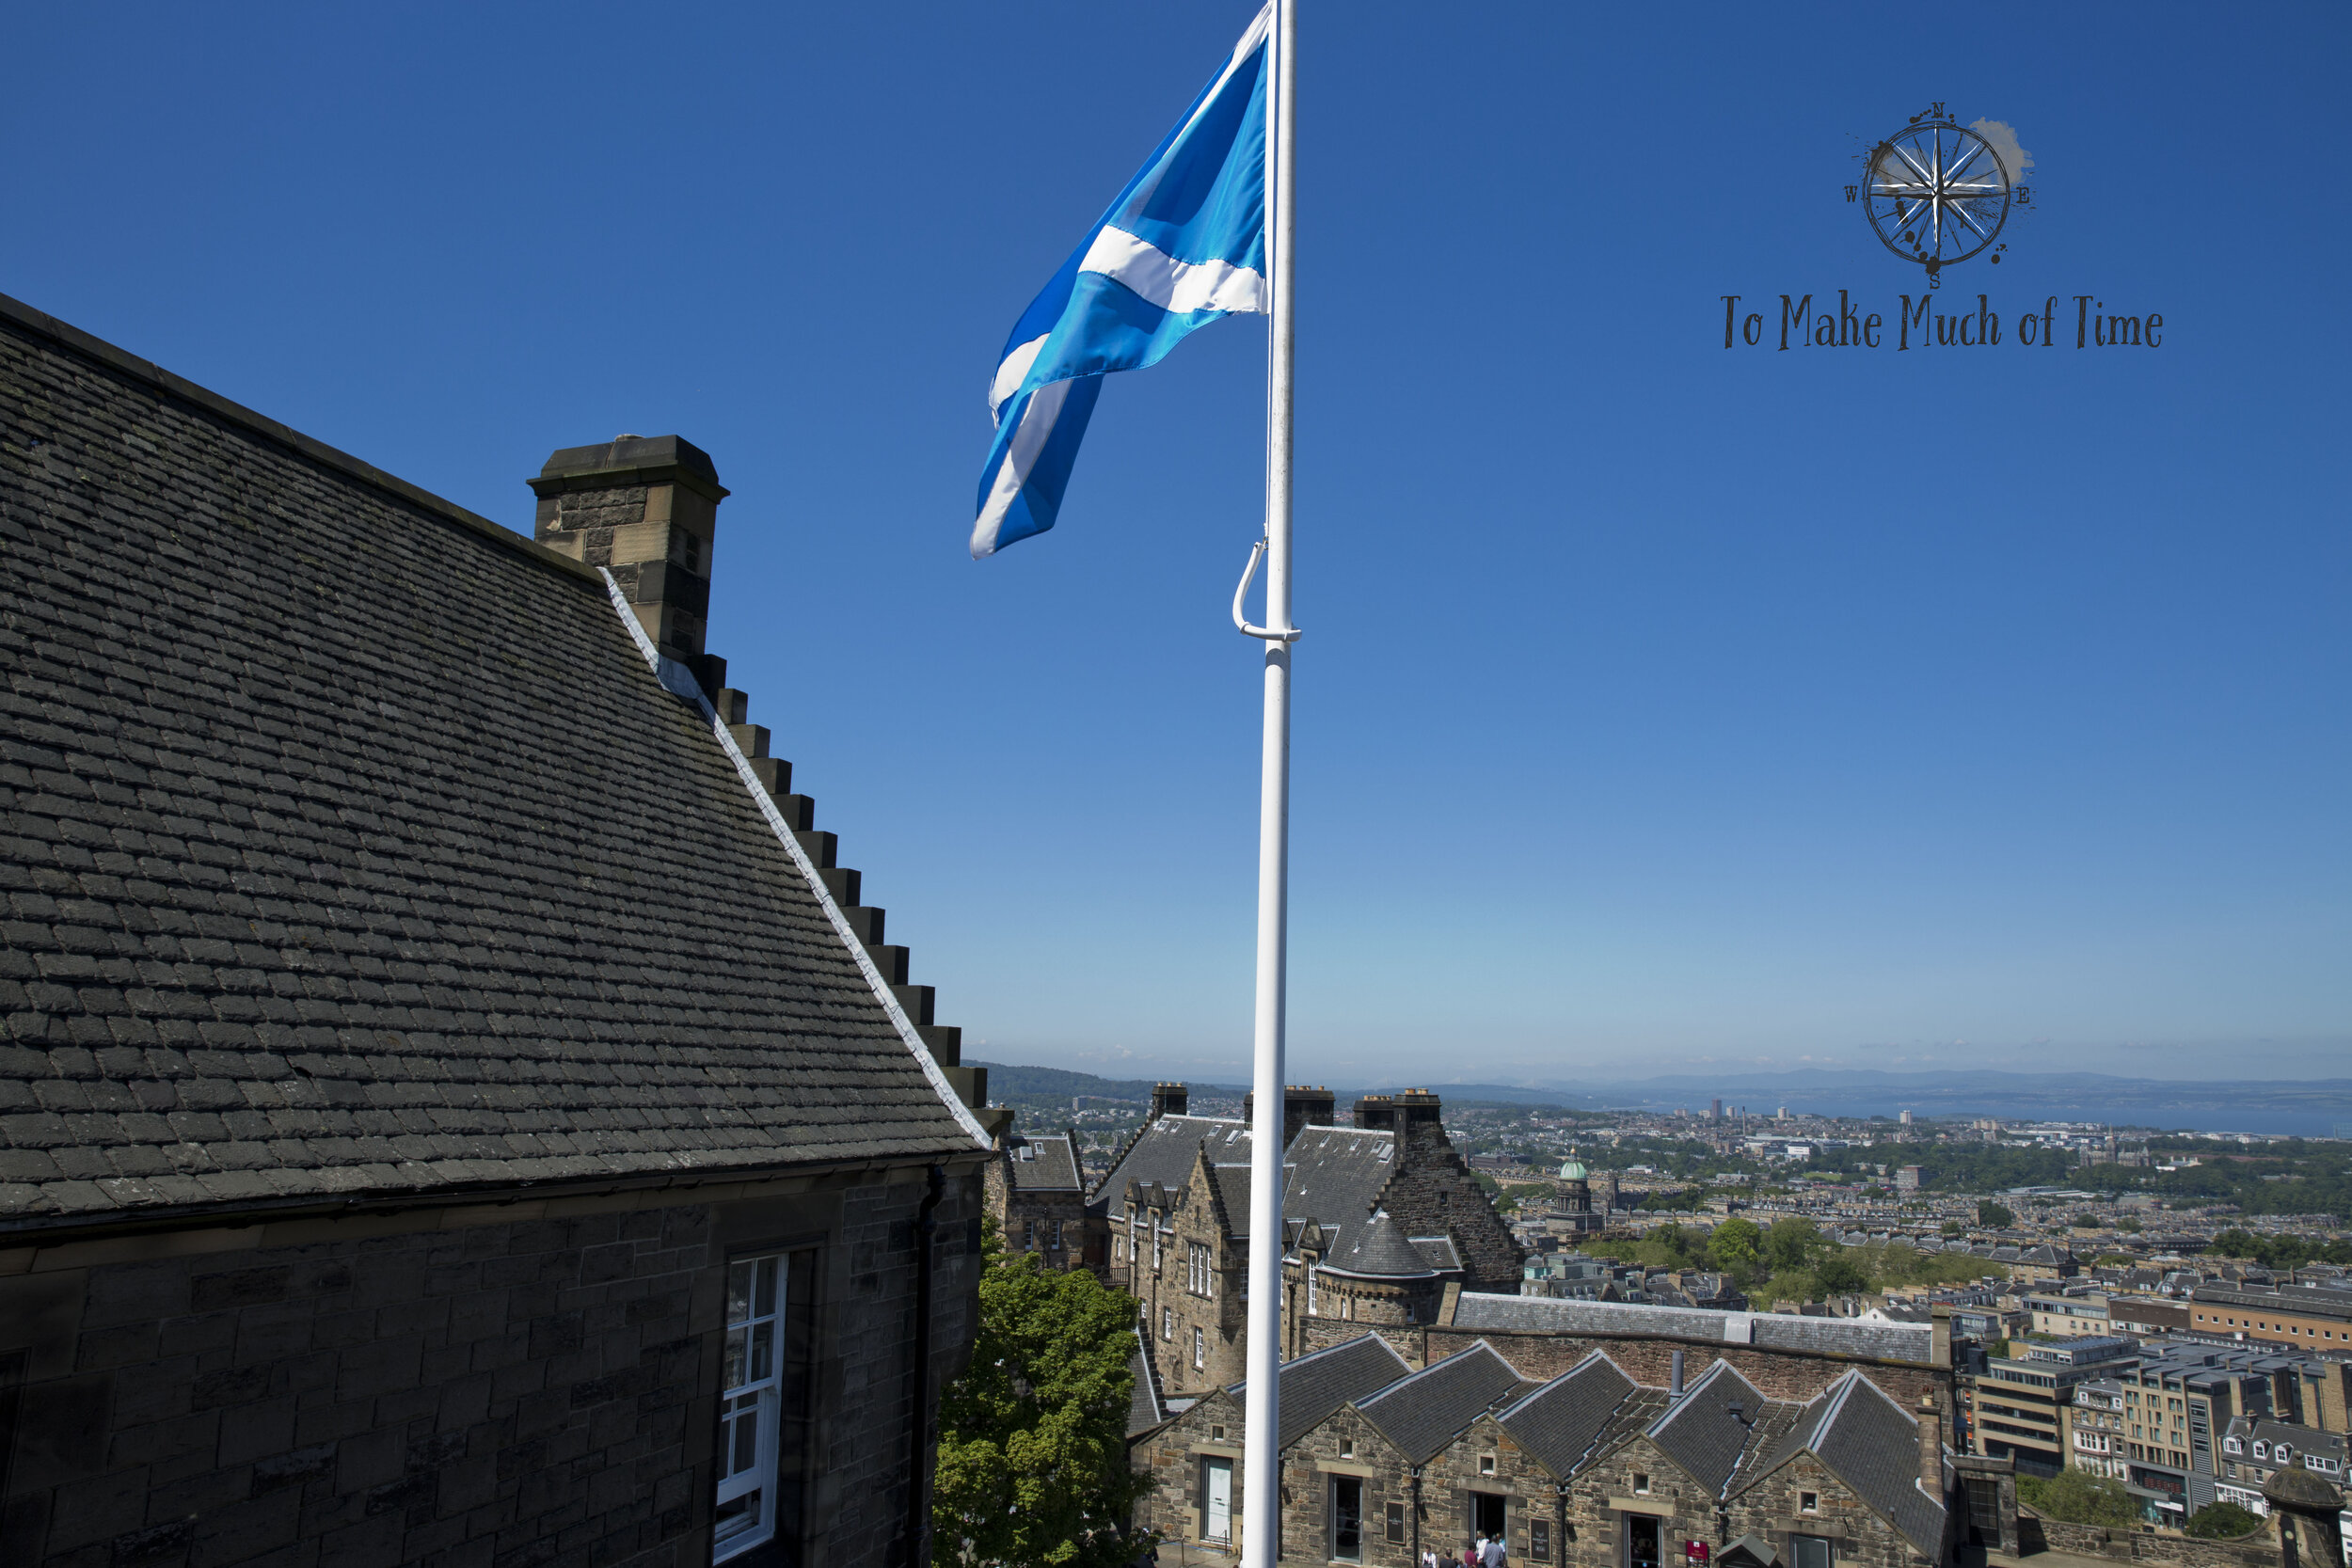 Taking a tour of Edinburgh Castle affords excellent views as the city spreads out below you.